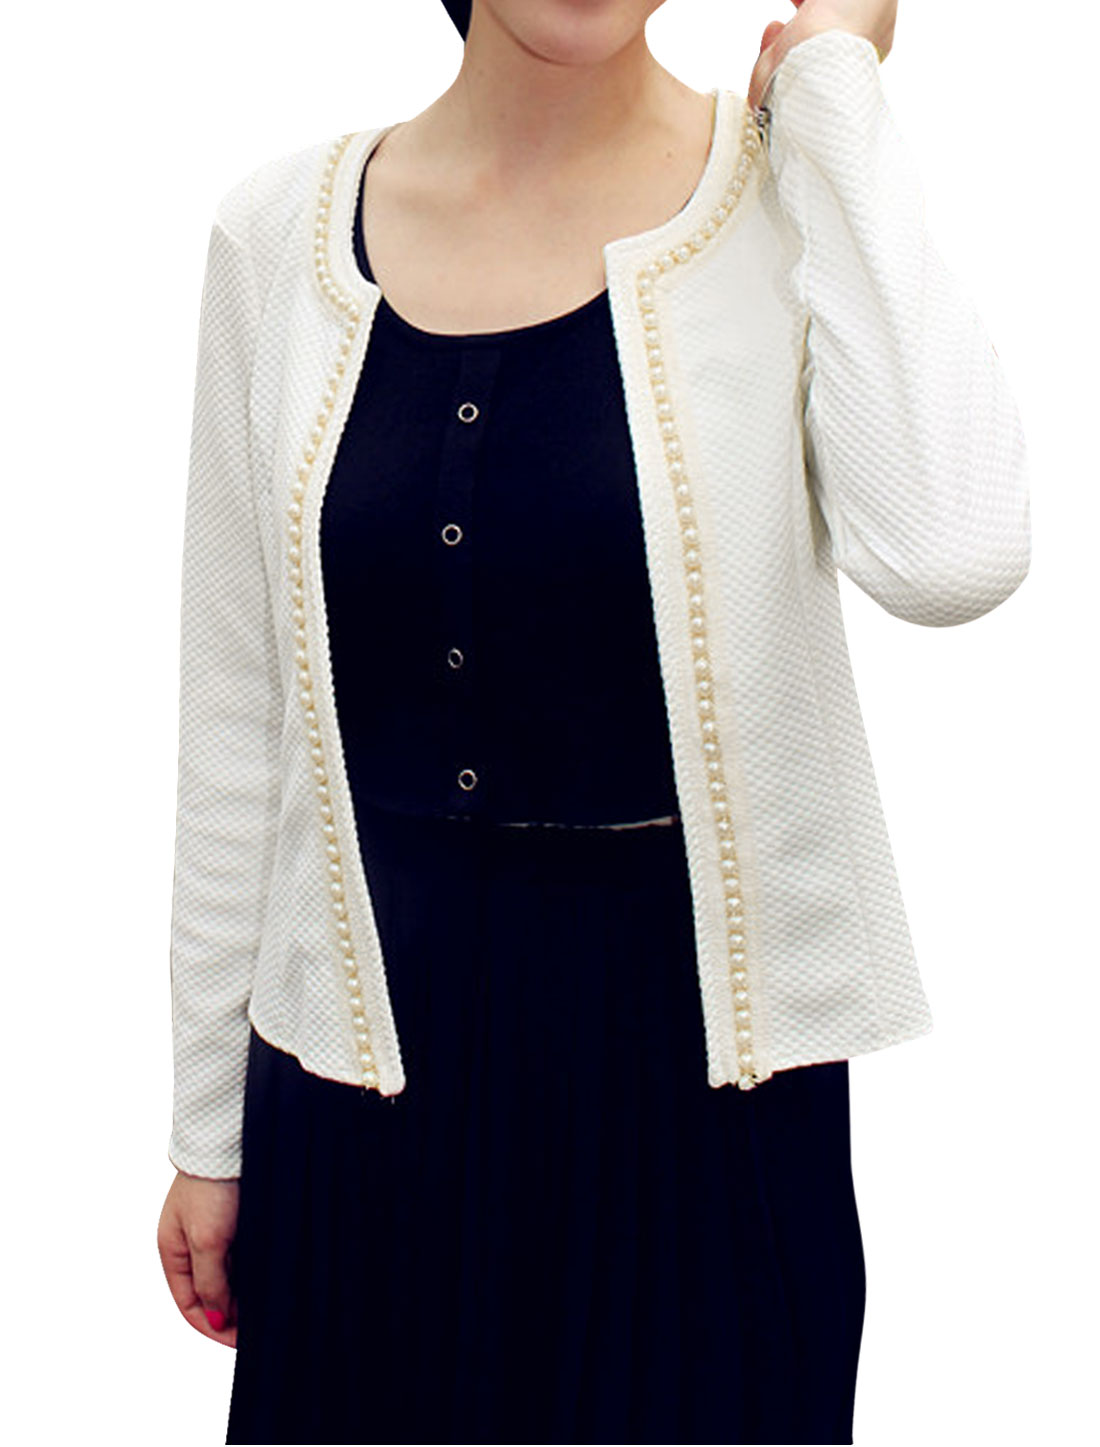 Ladies Long Sleeve Round Neck Plastic Pearl Decor Casual Jacket White S